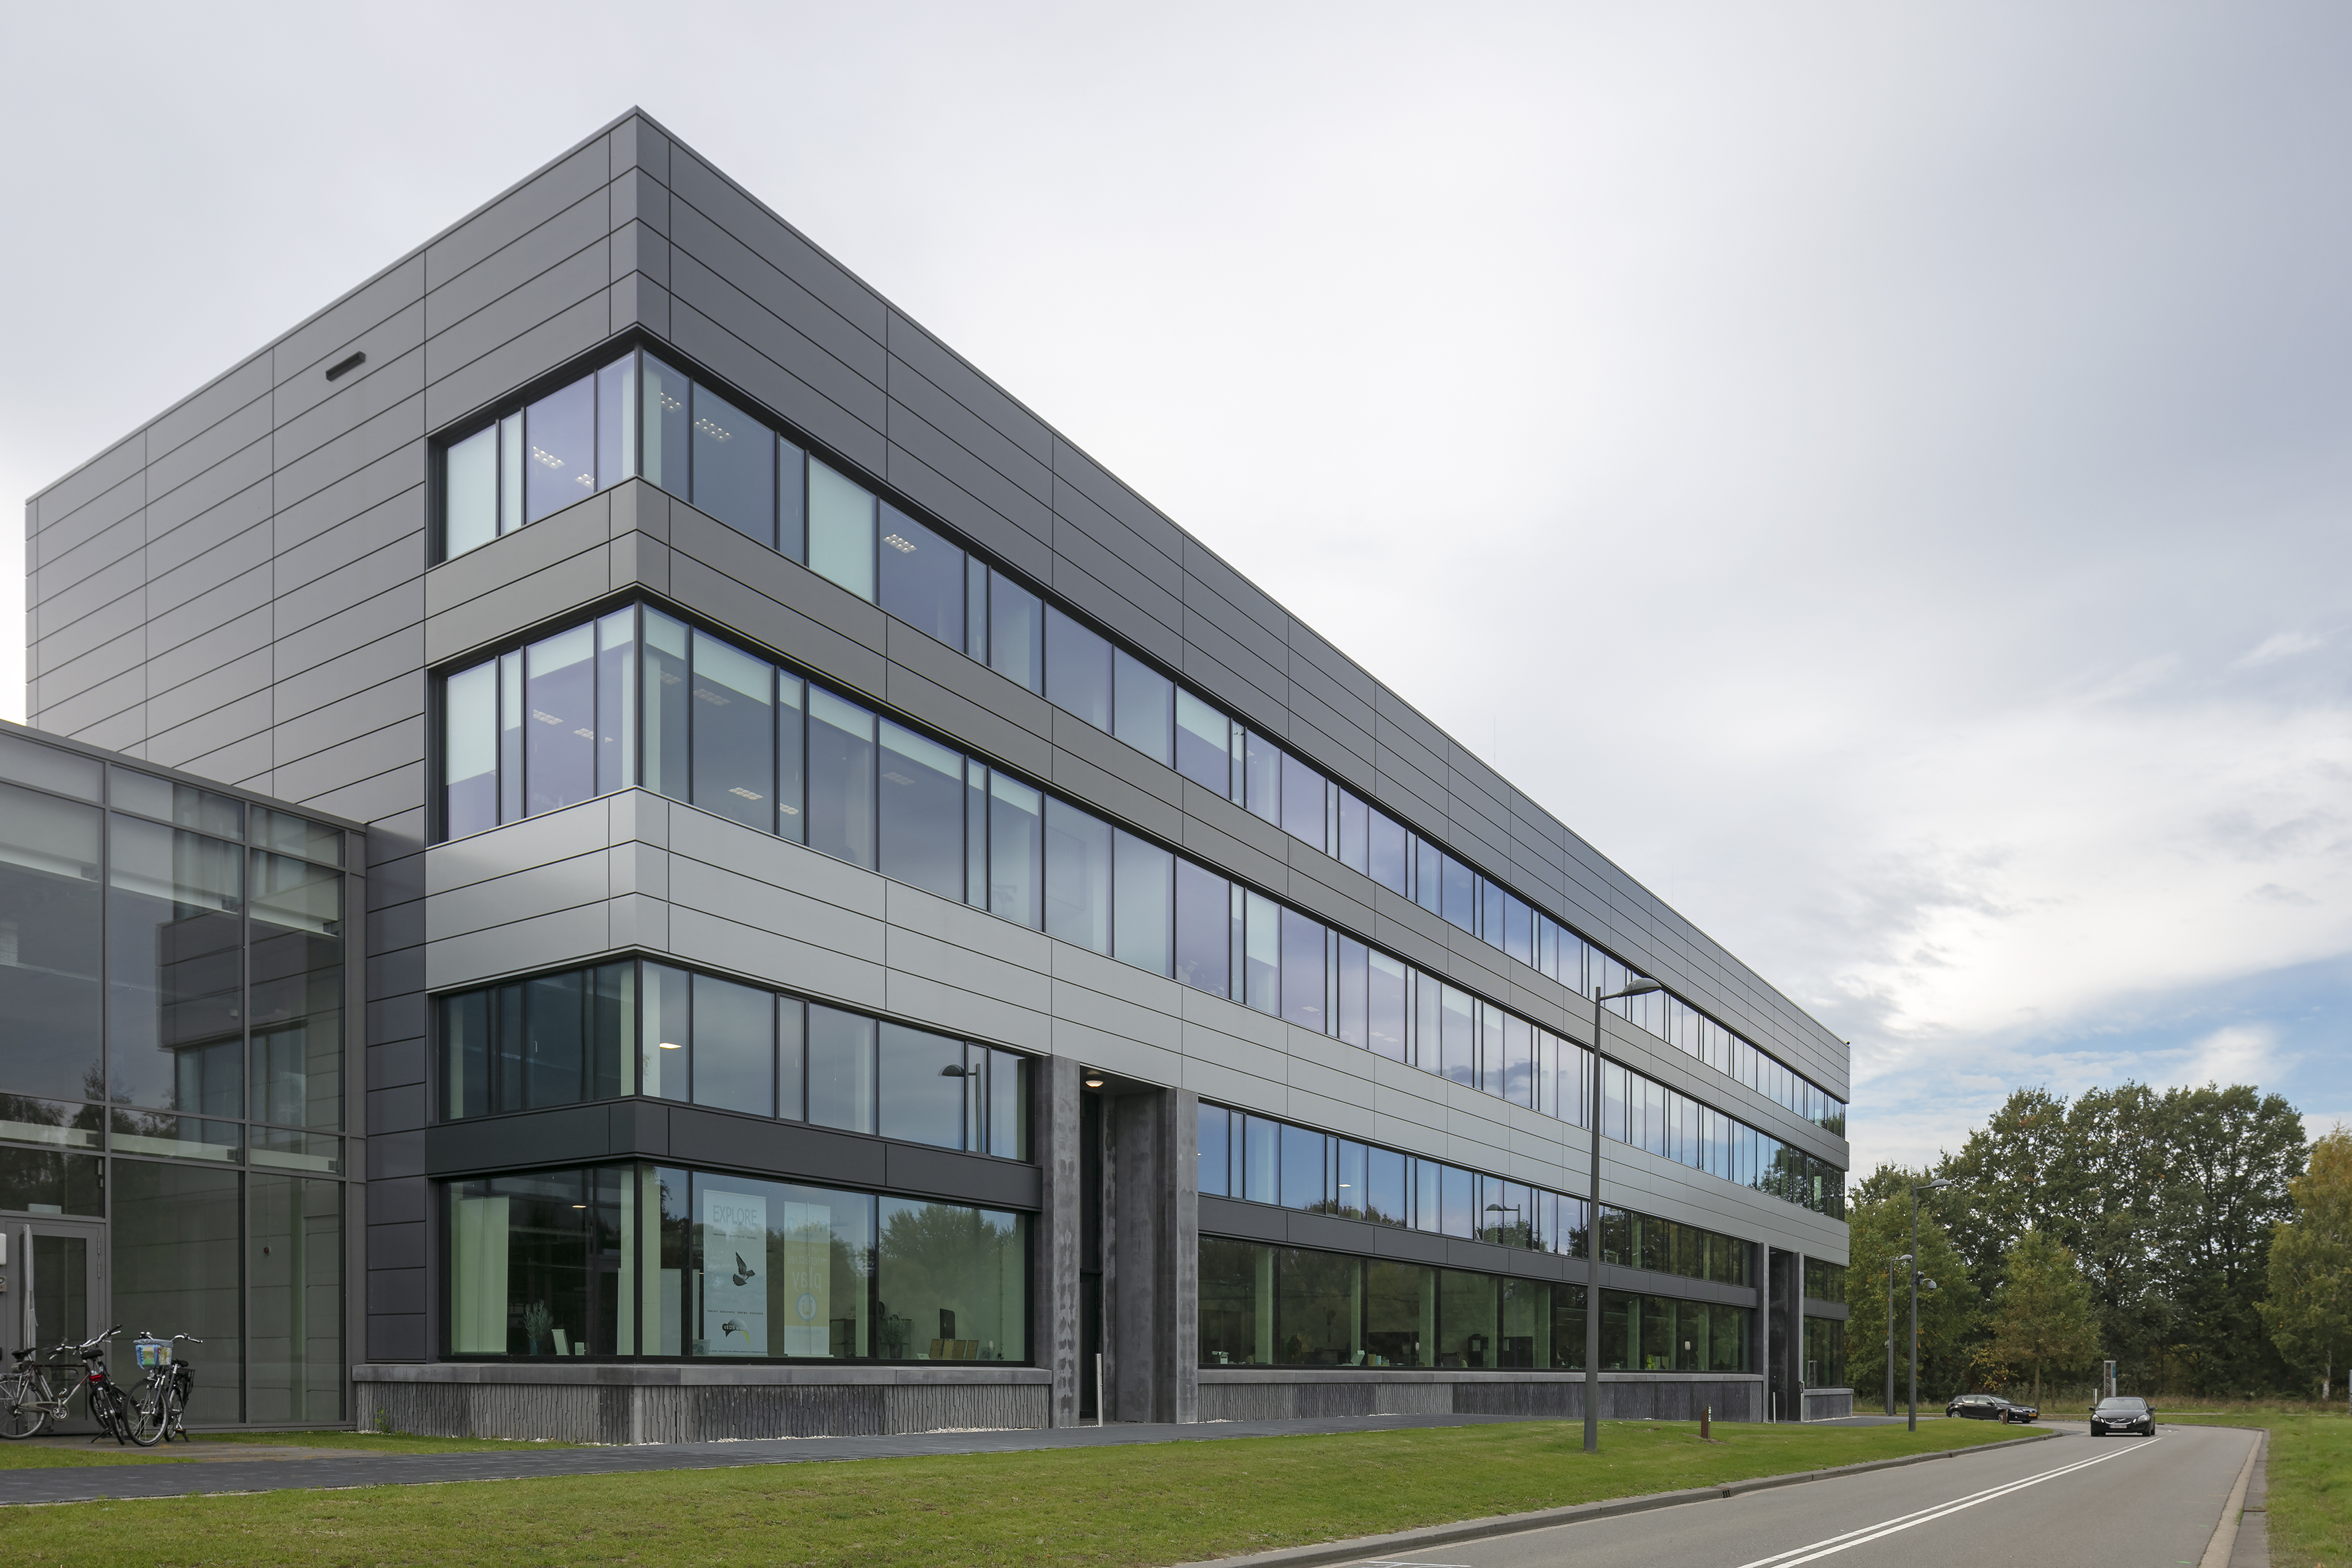 Commercial, Production and Storage Building IMF Tertia GmbH